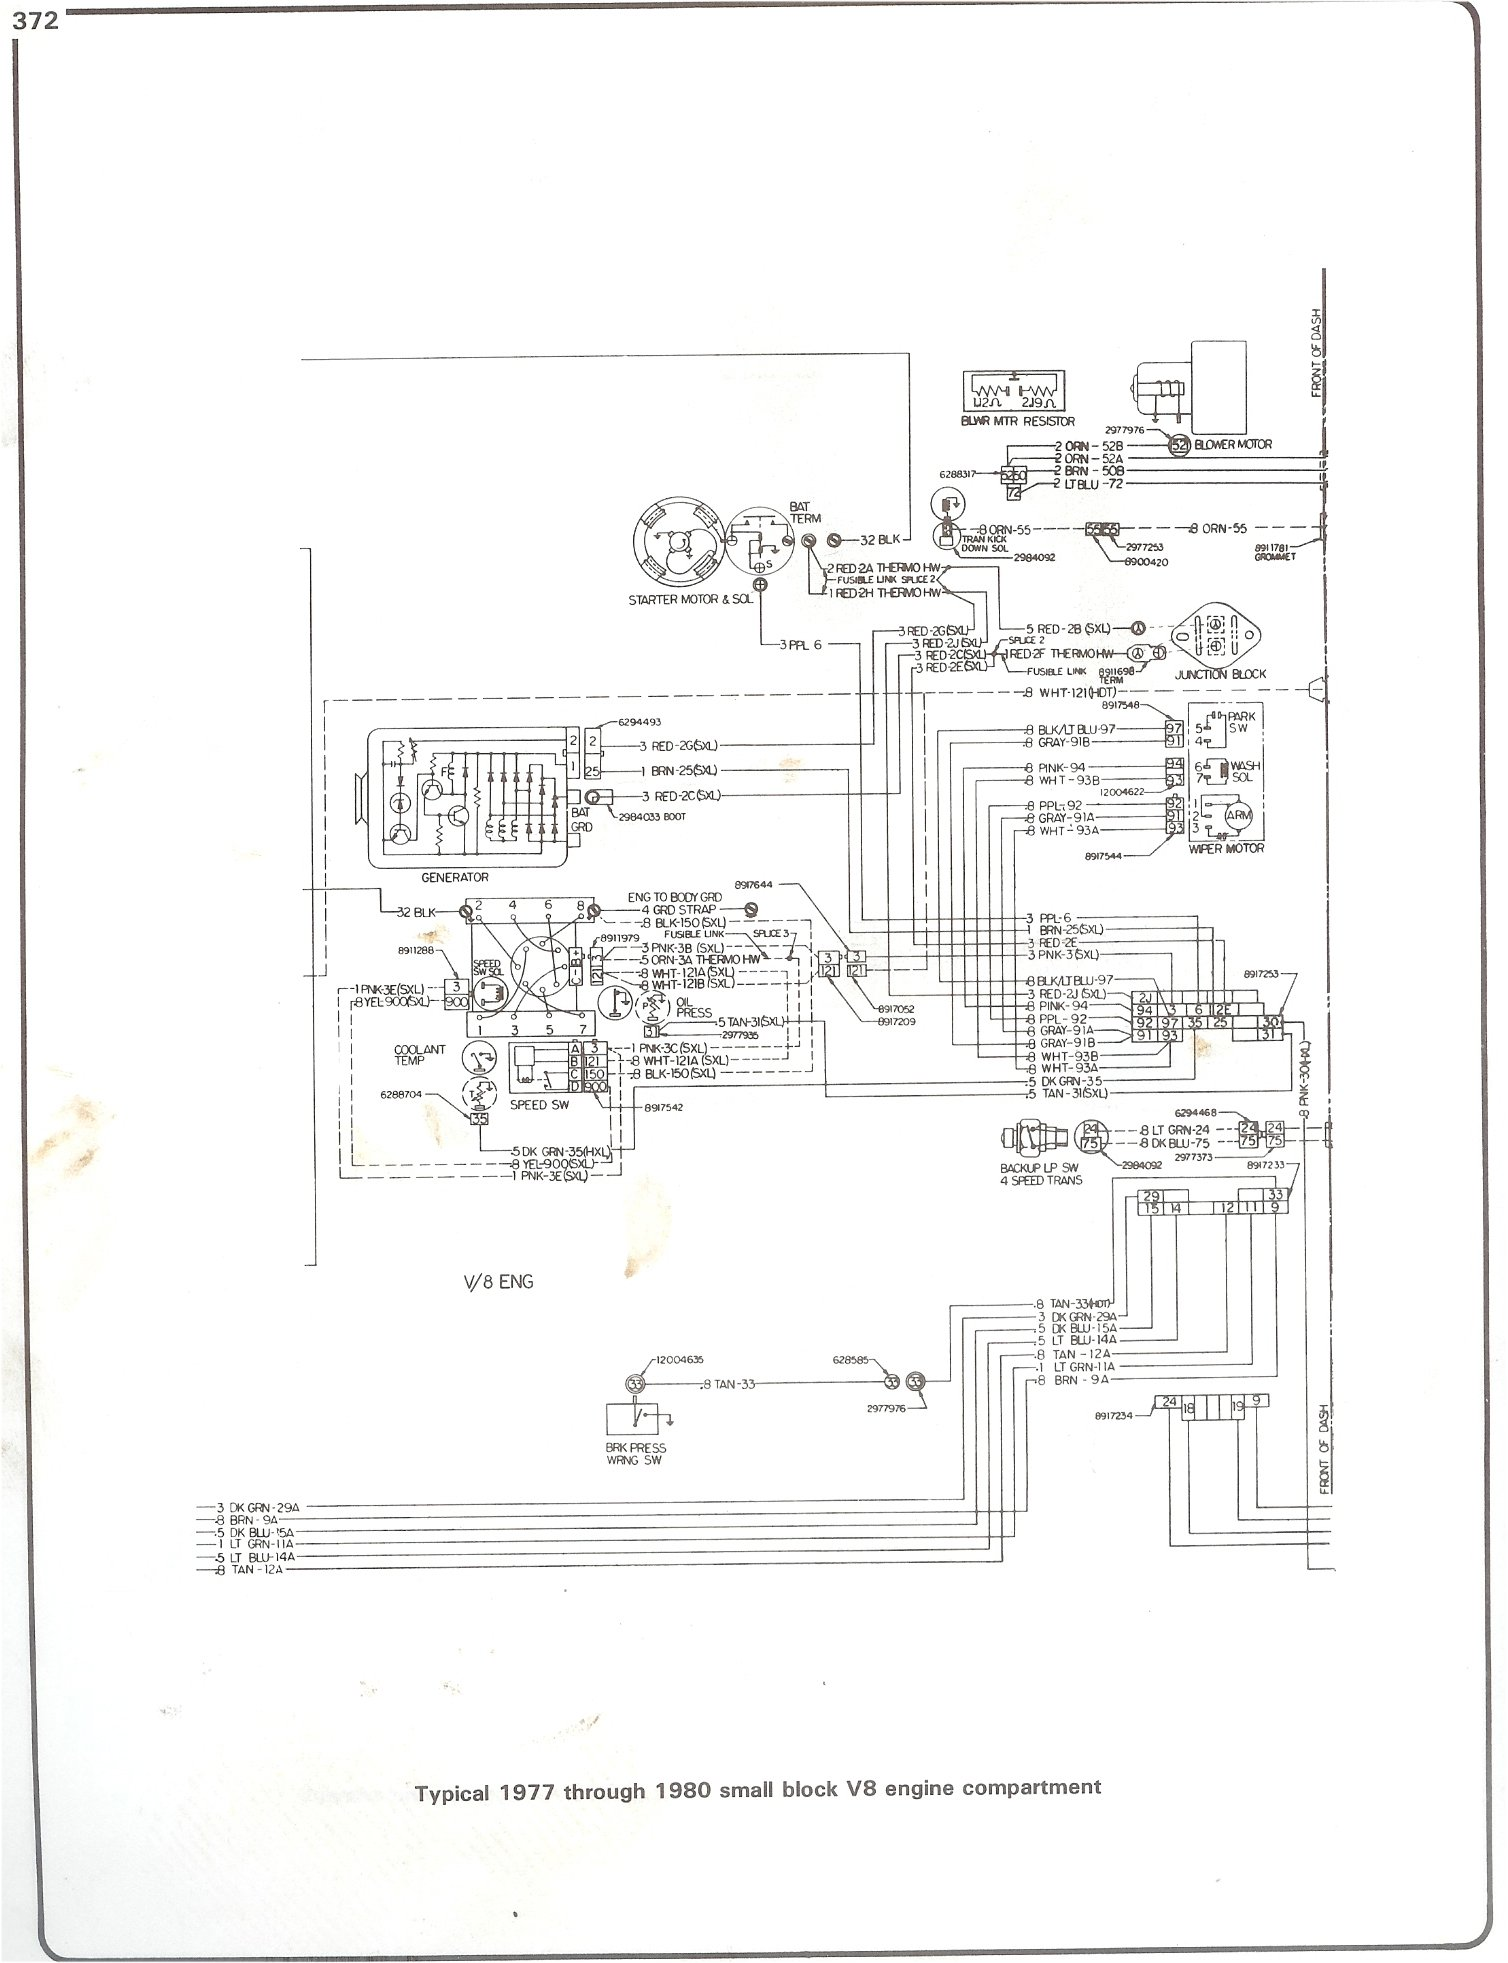 1985 dodge dakota wiring diagram